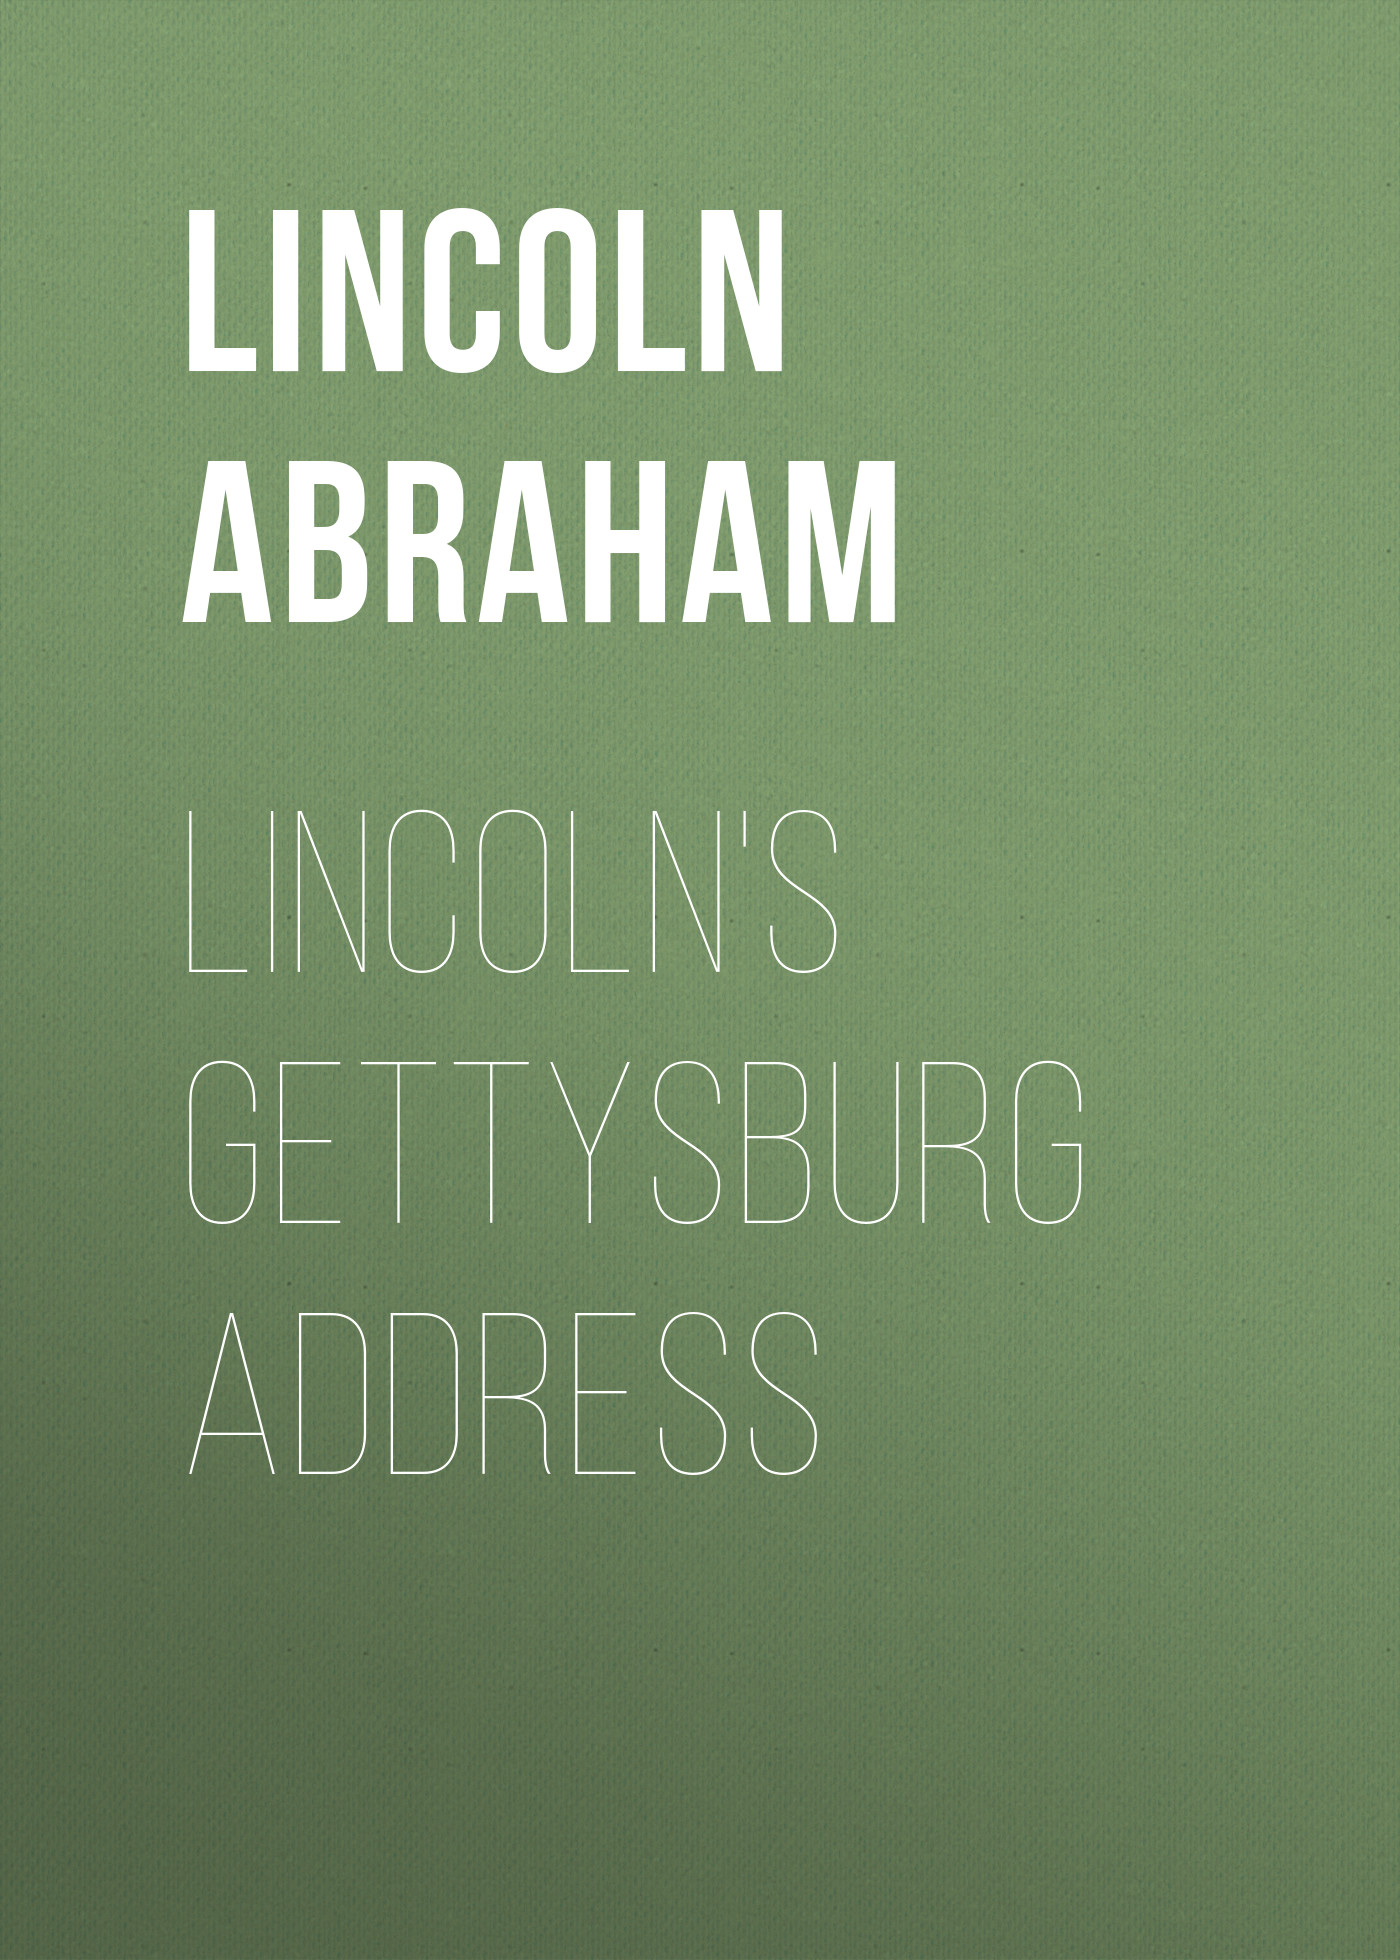 Lincoln Abraham Lincoln's Gettysburg Address i am abraham lincoln learning